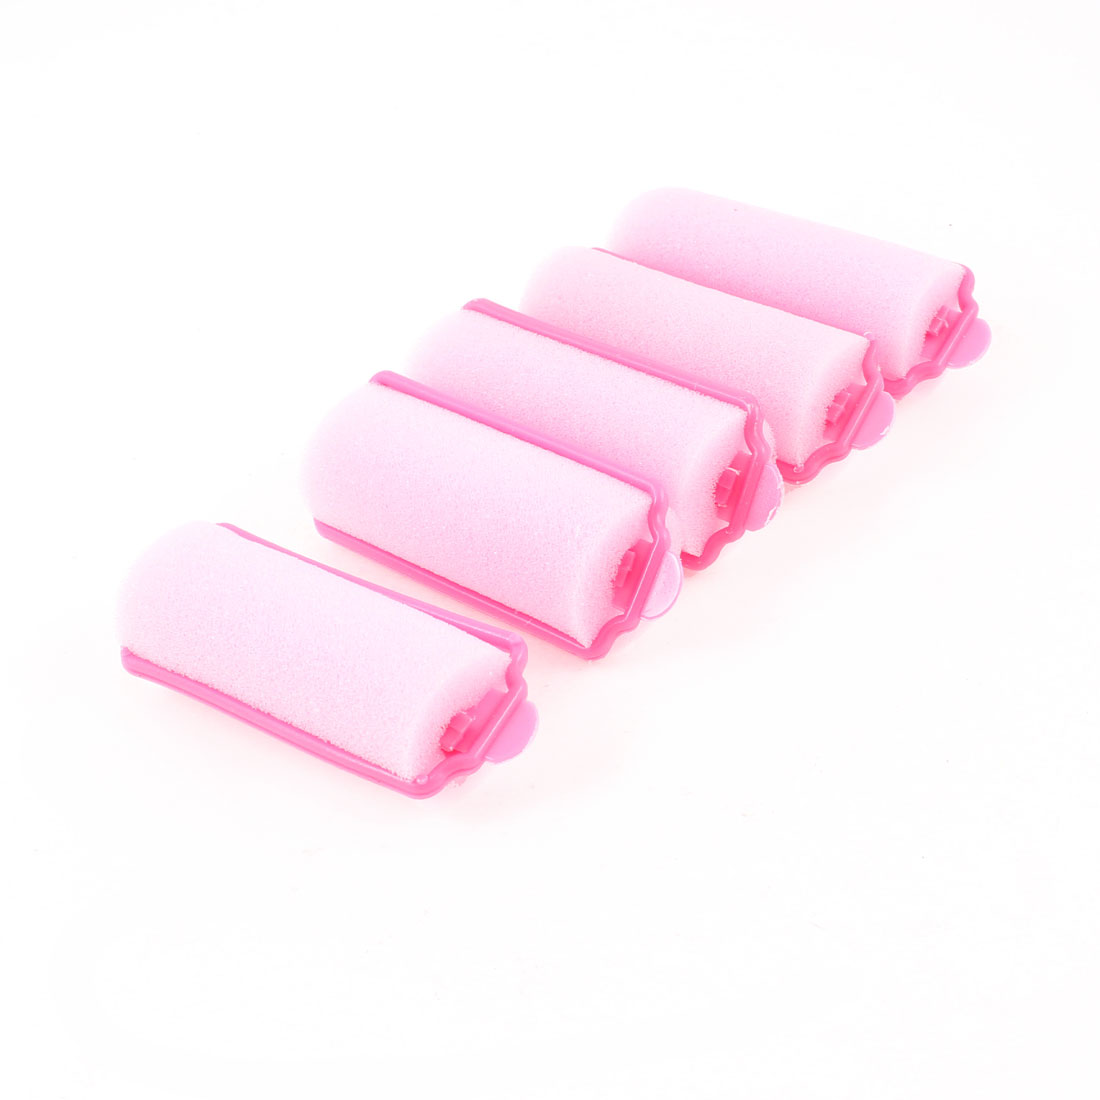 5 Pcs Pink Sponge Curly Hairstyle DIY Hair Roller Curler